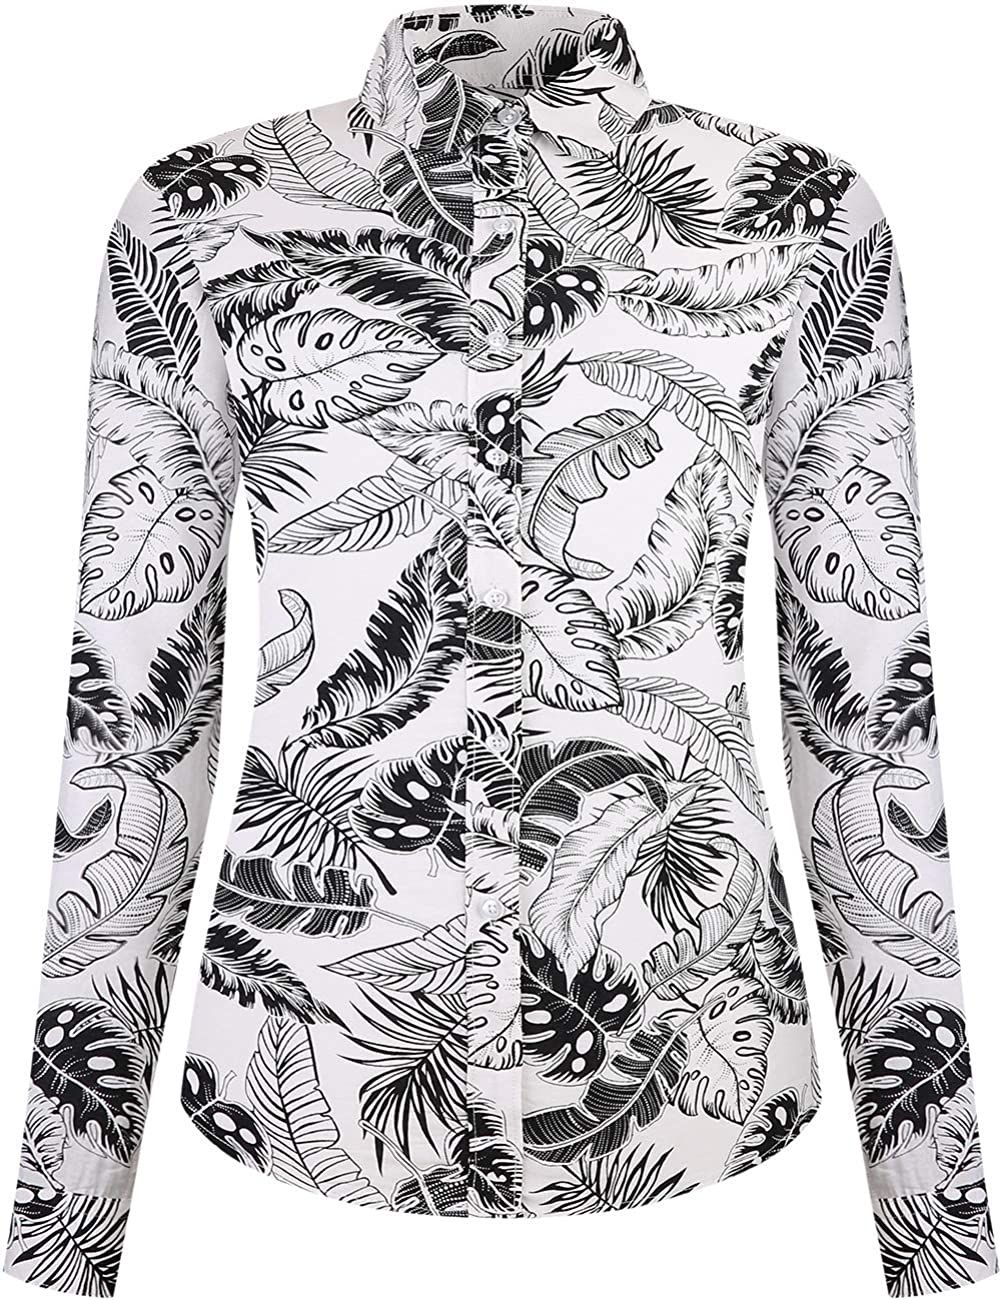 Tropical Leaves with Three Flamingos Pattern Printed Baby Boys Kids Crew Neck Sweater Long Sleeve Soft Knit Sweatshirt